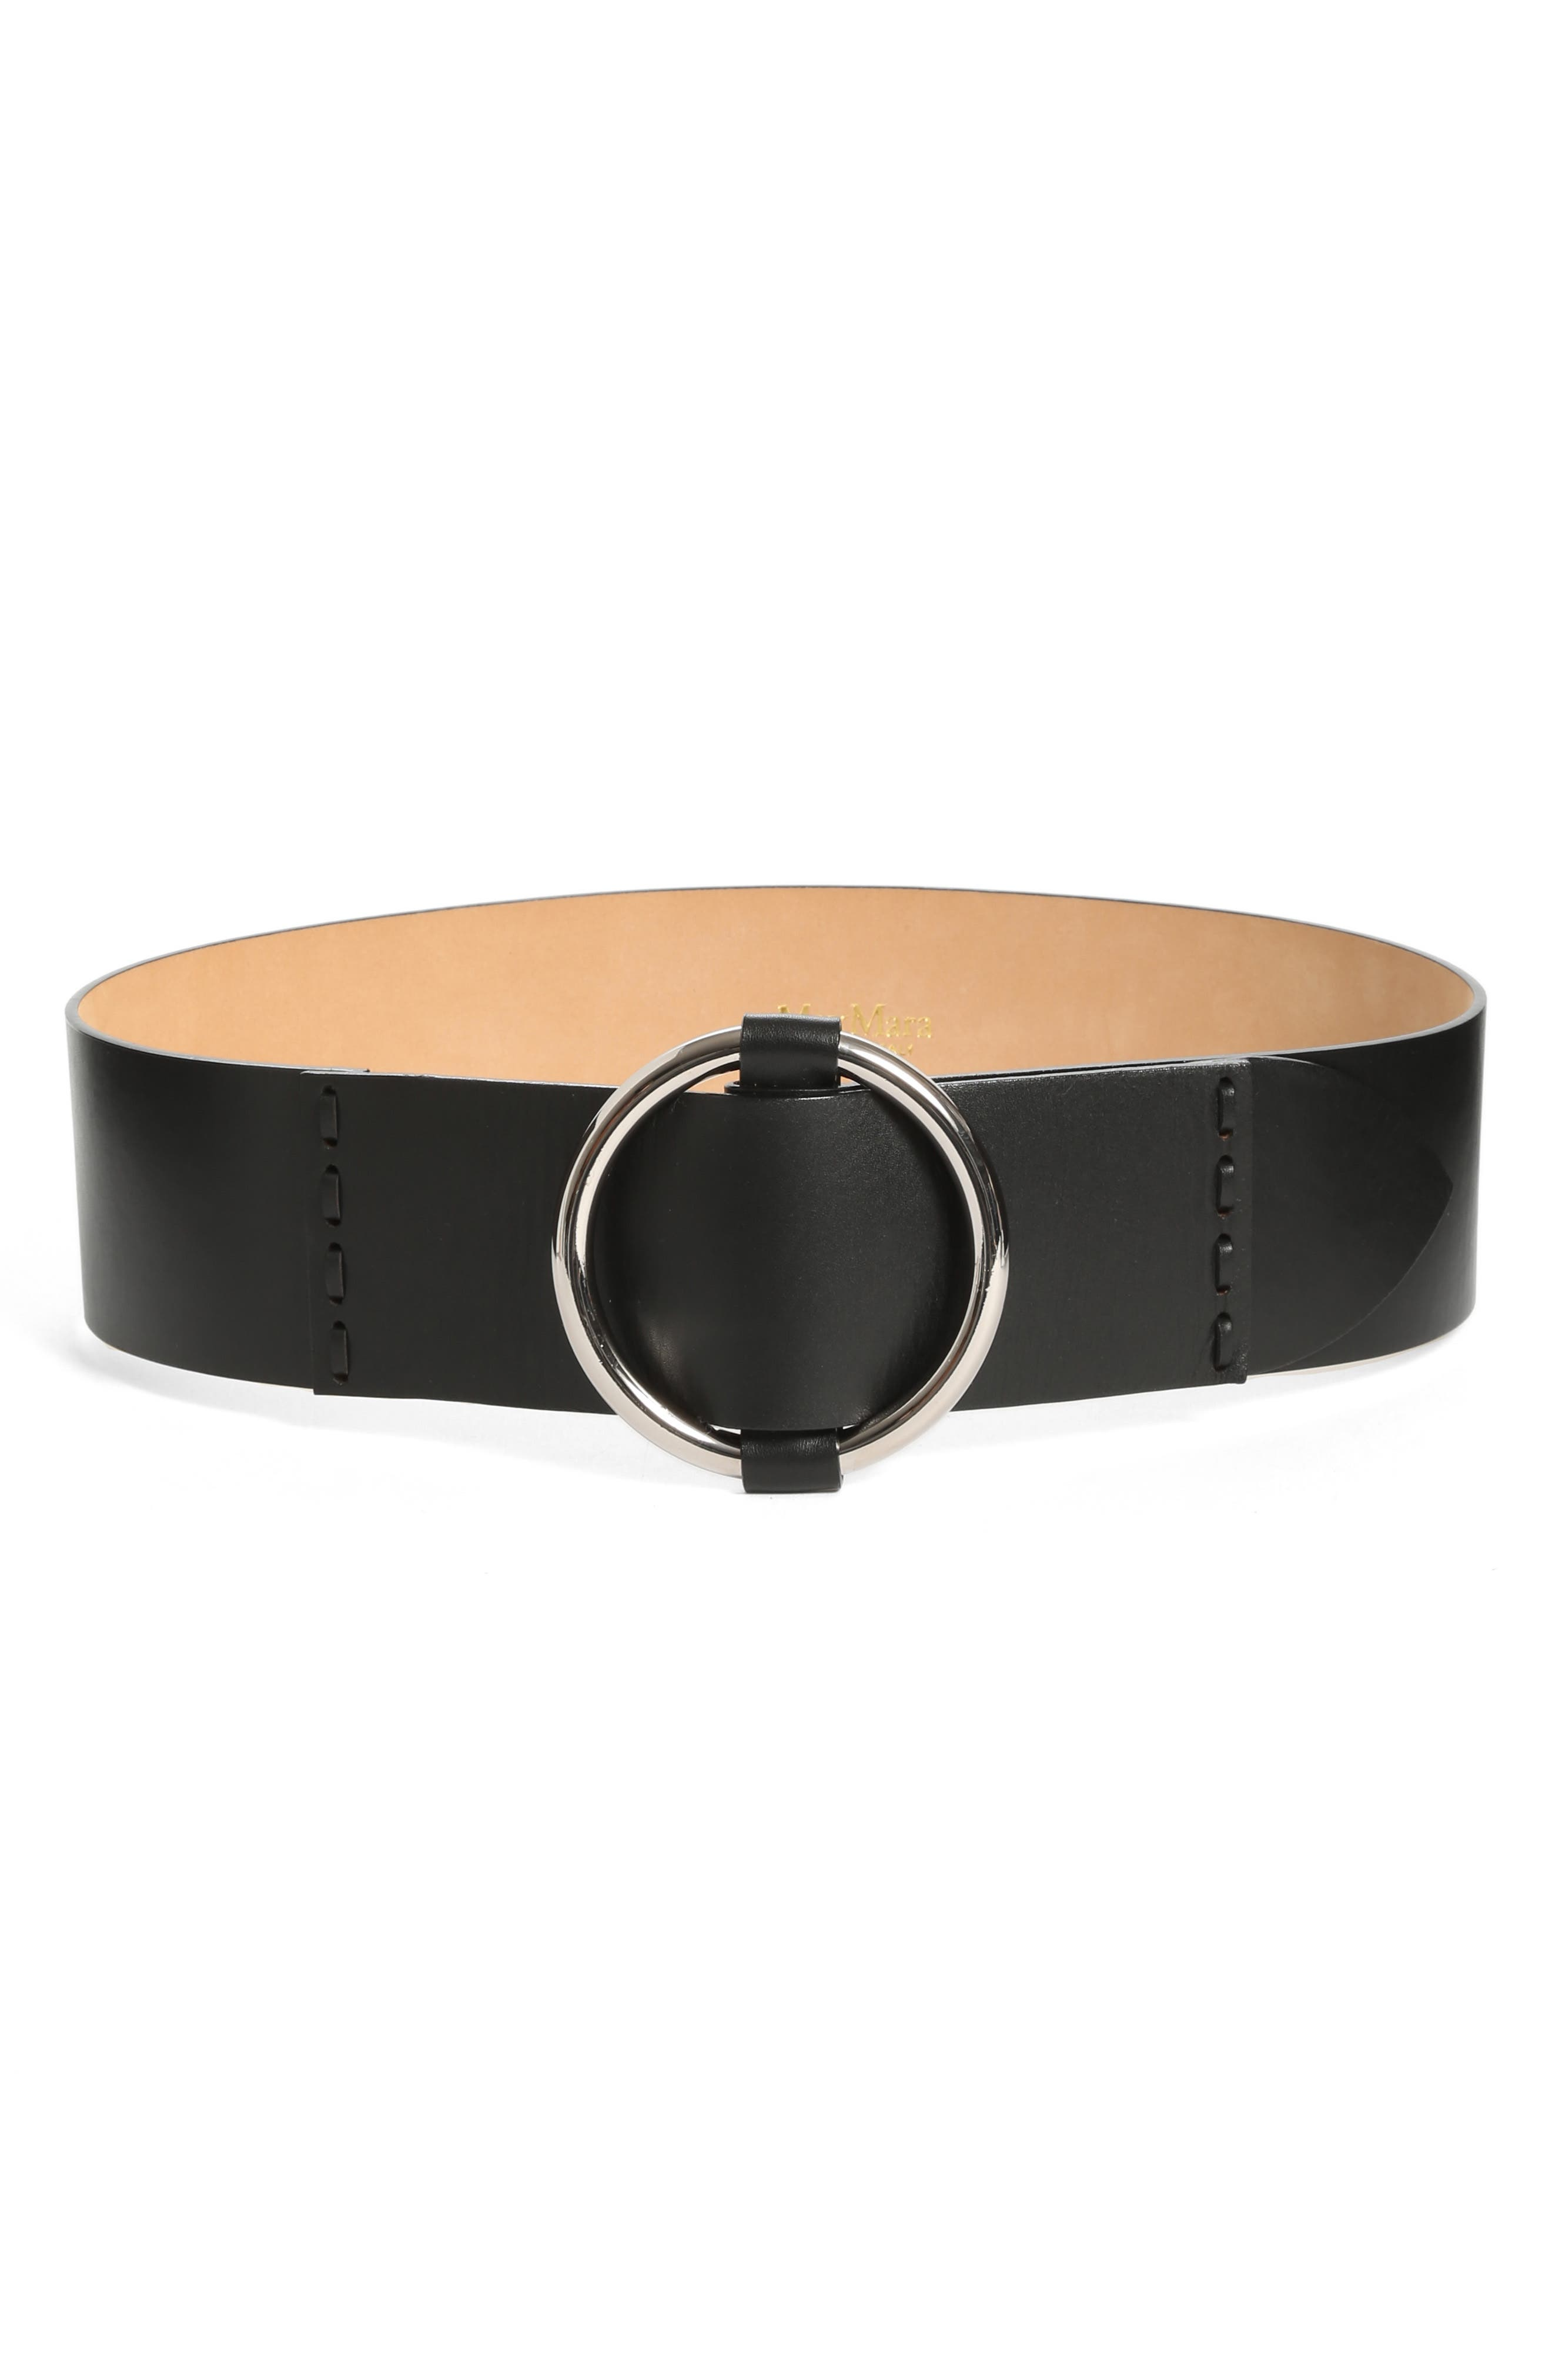 Curt Circle Buckle Leather Belt,                             Main thumbnail 1, color,                             001